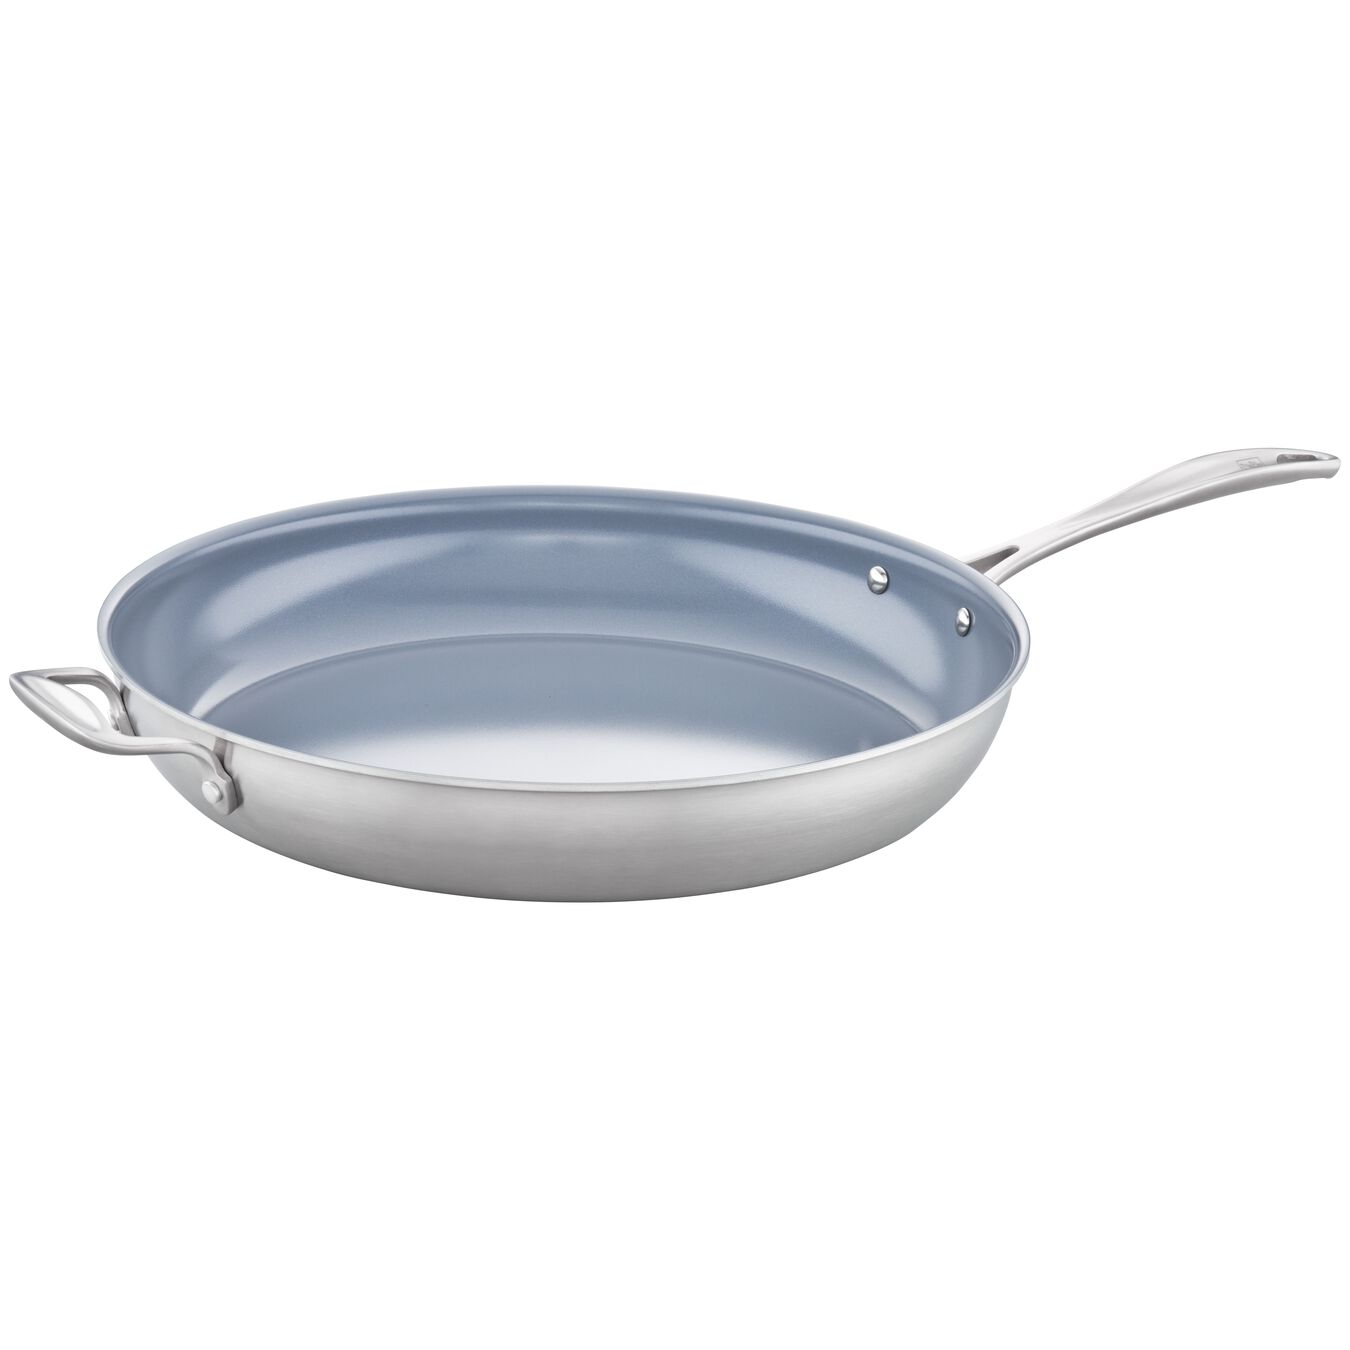 3-ply 14-inch Stainless Steel Ceramic Nonstick Fry Pan,,large 1